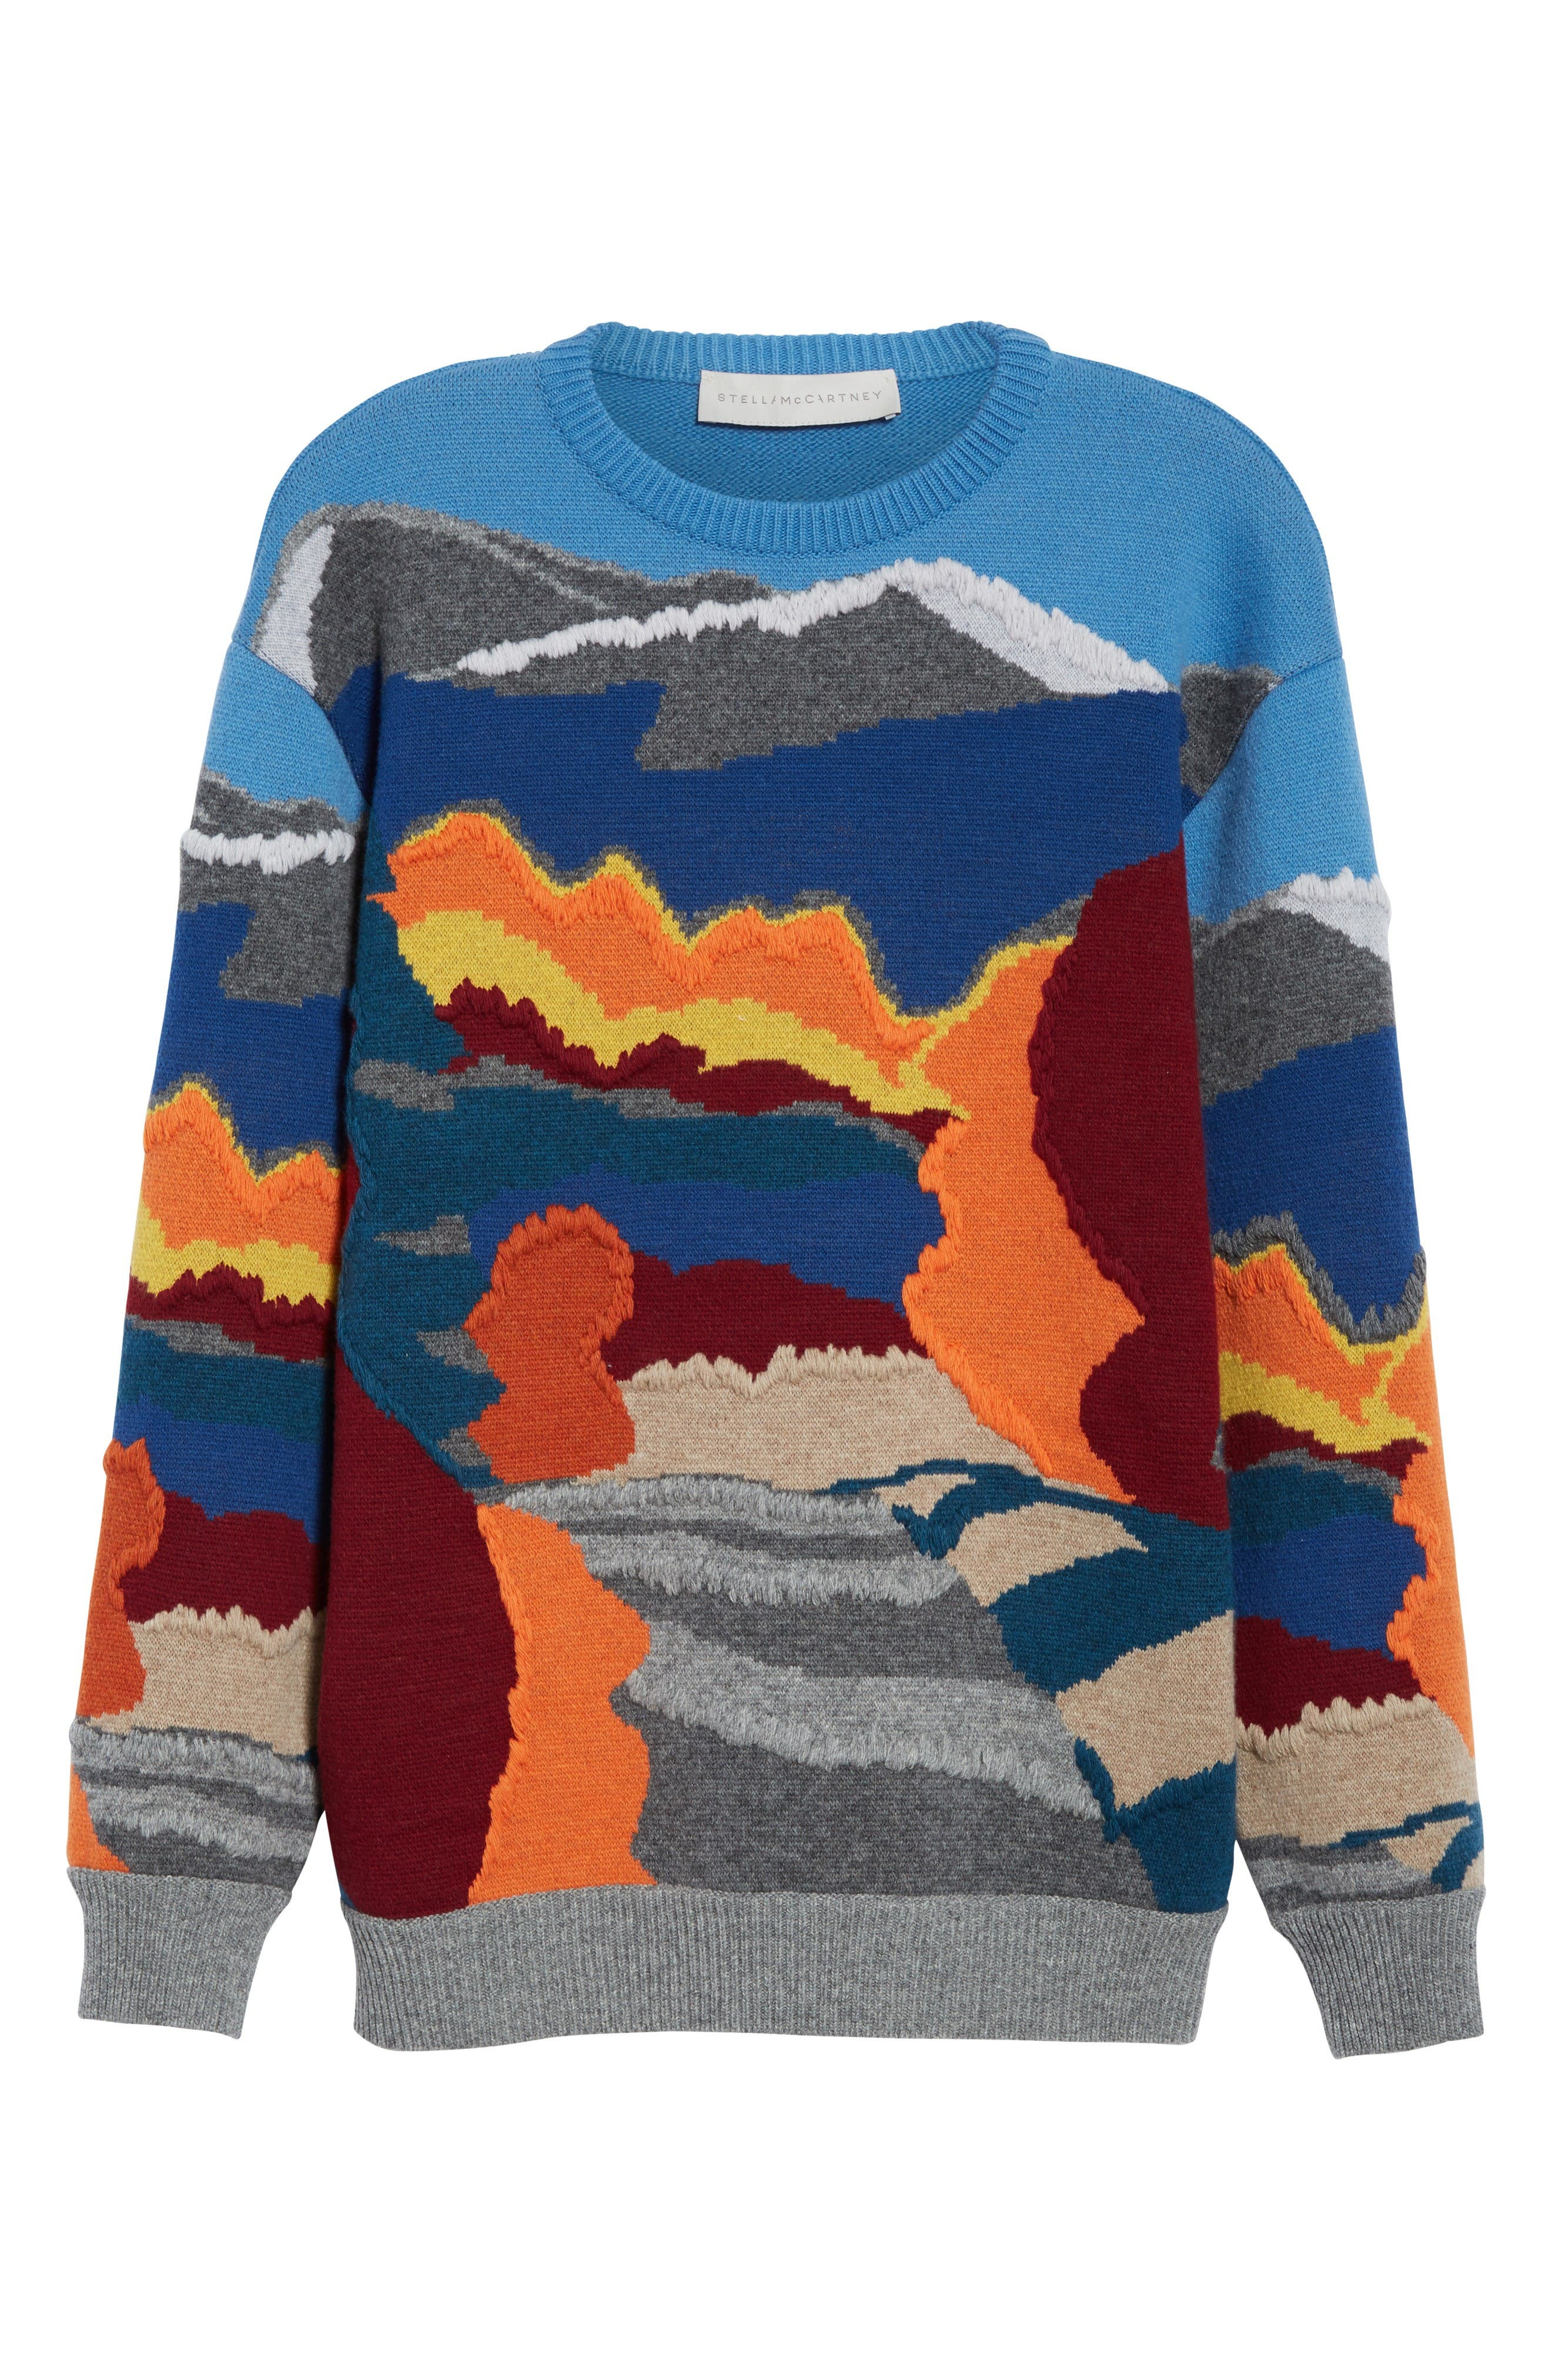 Alternate Image 4  - Stella McCartney 'Landscape' Intarsia Knit Wool Sweater